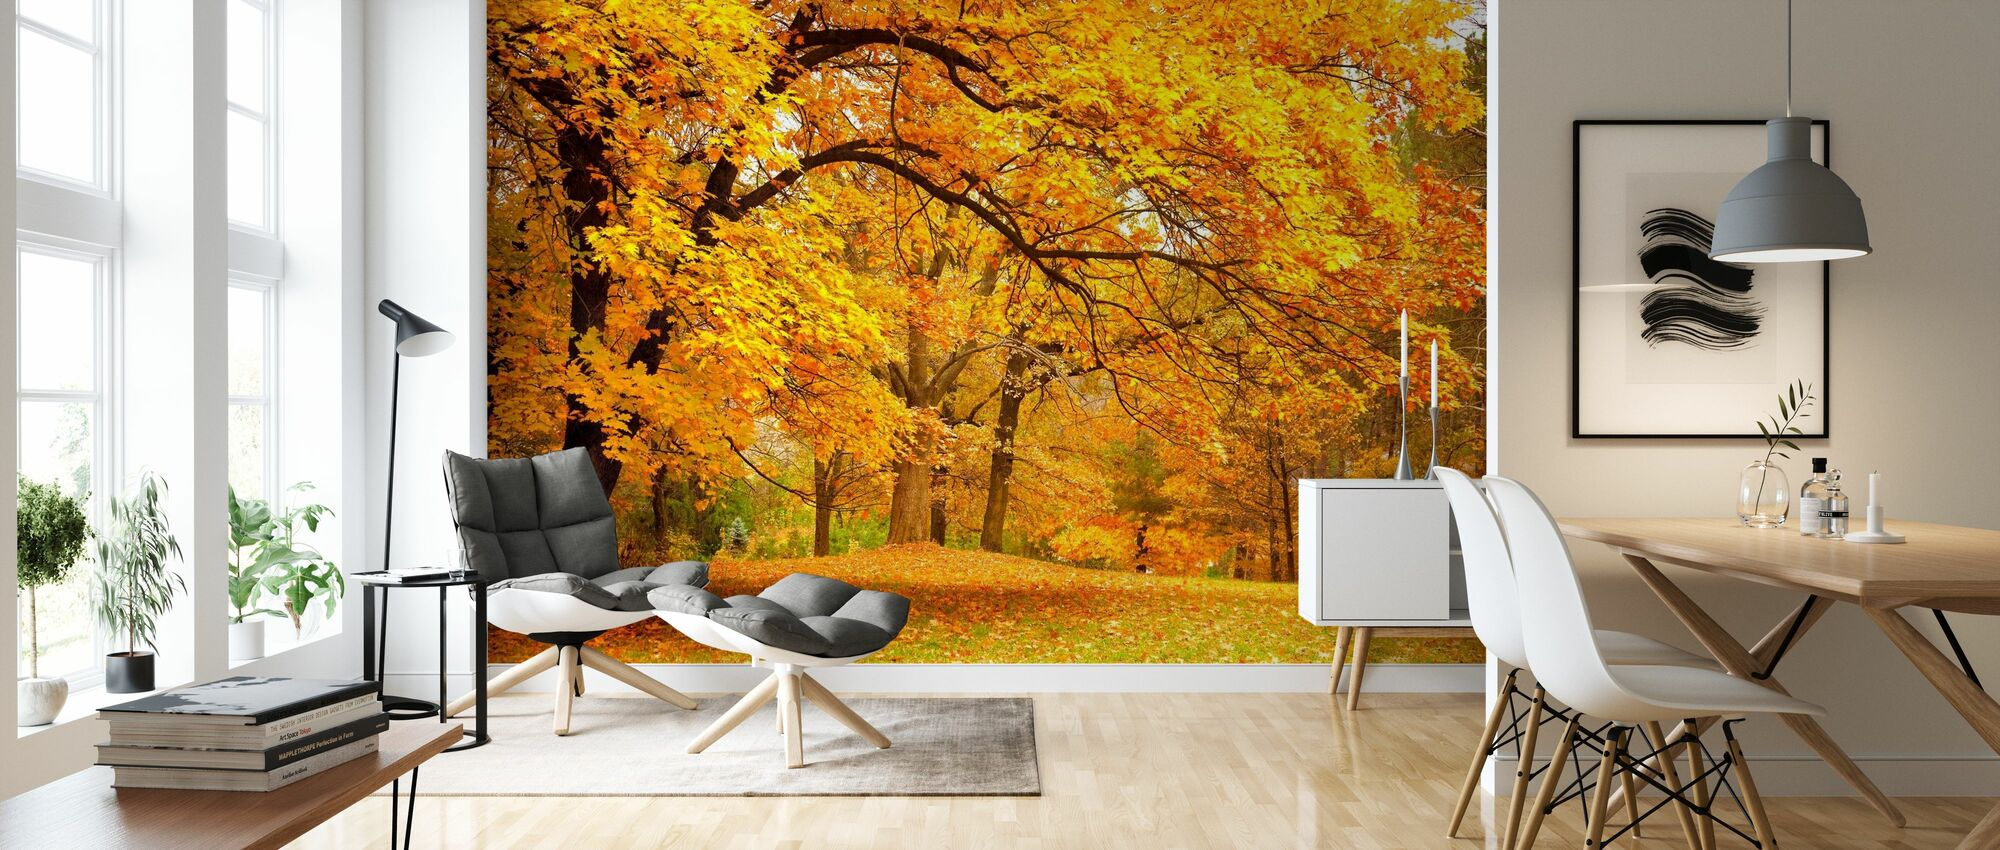 Colorful Autumn Leaves - Wallpaper - Living Room